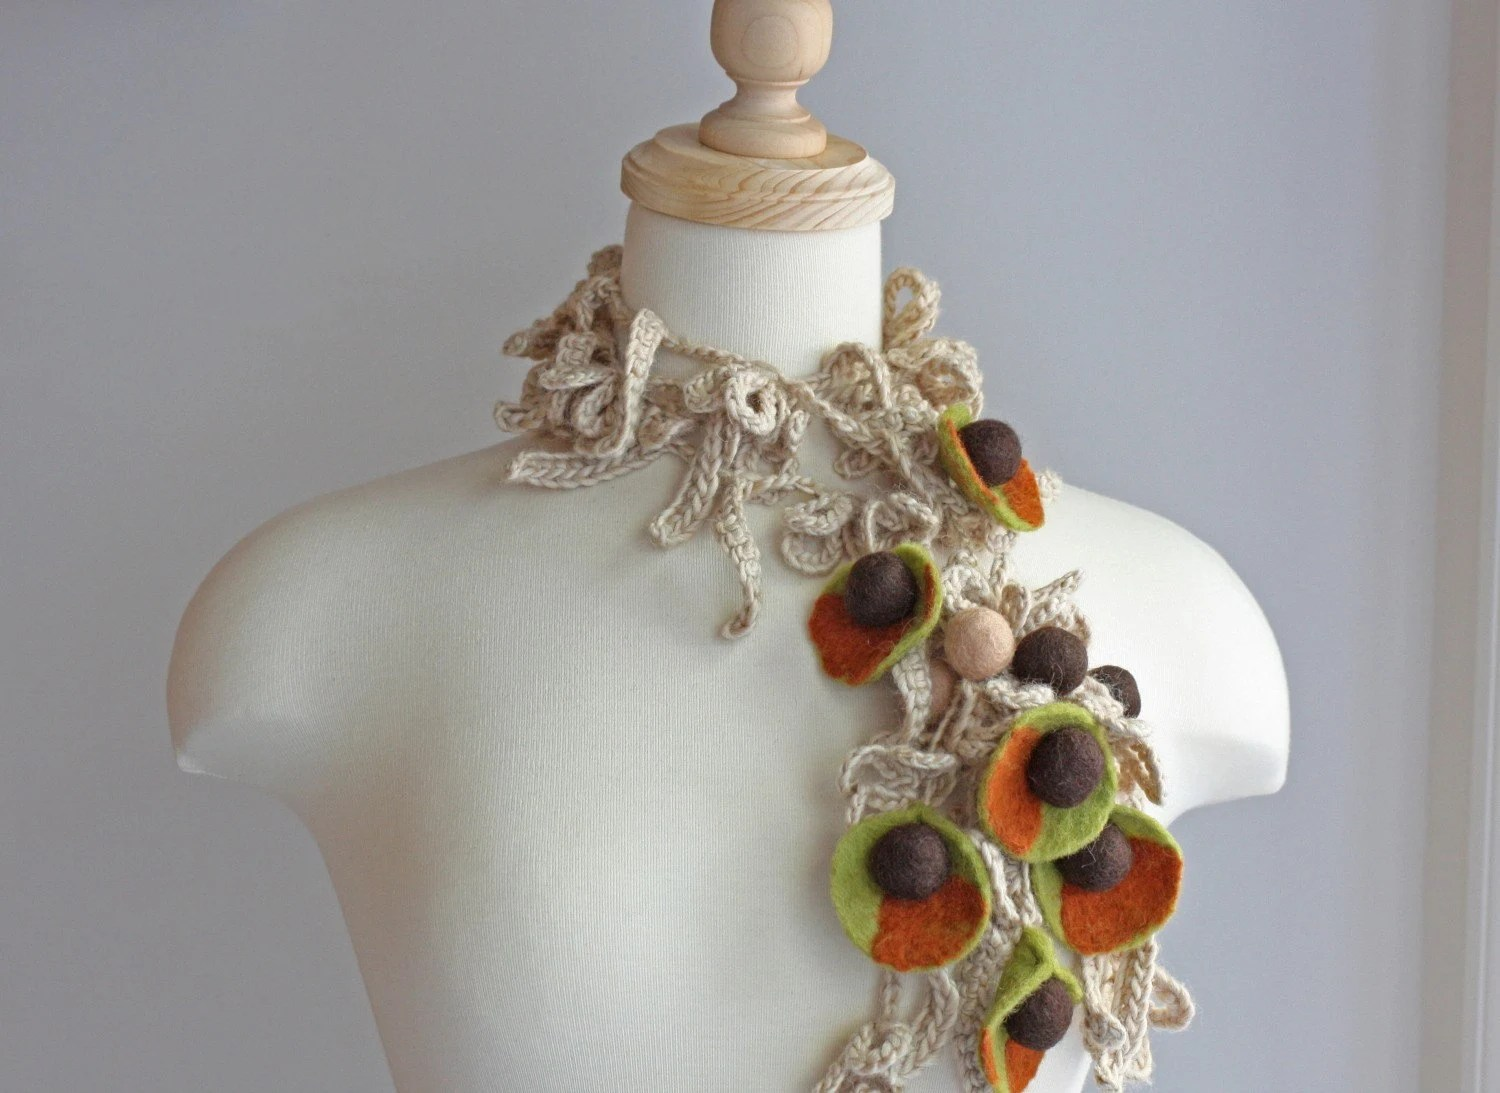 Super Long Crocheted With Felted Multicolored Pieces and Beads Necklace/Lariat/Scarf/Bracelet - made from Wool and Soy - in Handmade Felt and Freeform Crochet Techniques - in Beige, Nutmeg, Green, Brown - Inspired by Vintage Enamel Jewelry